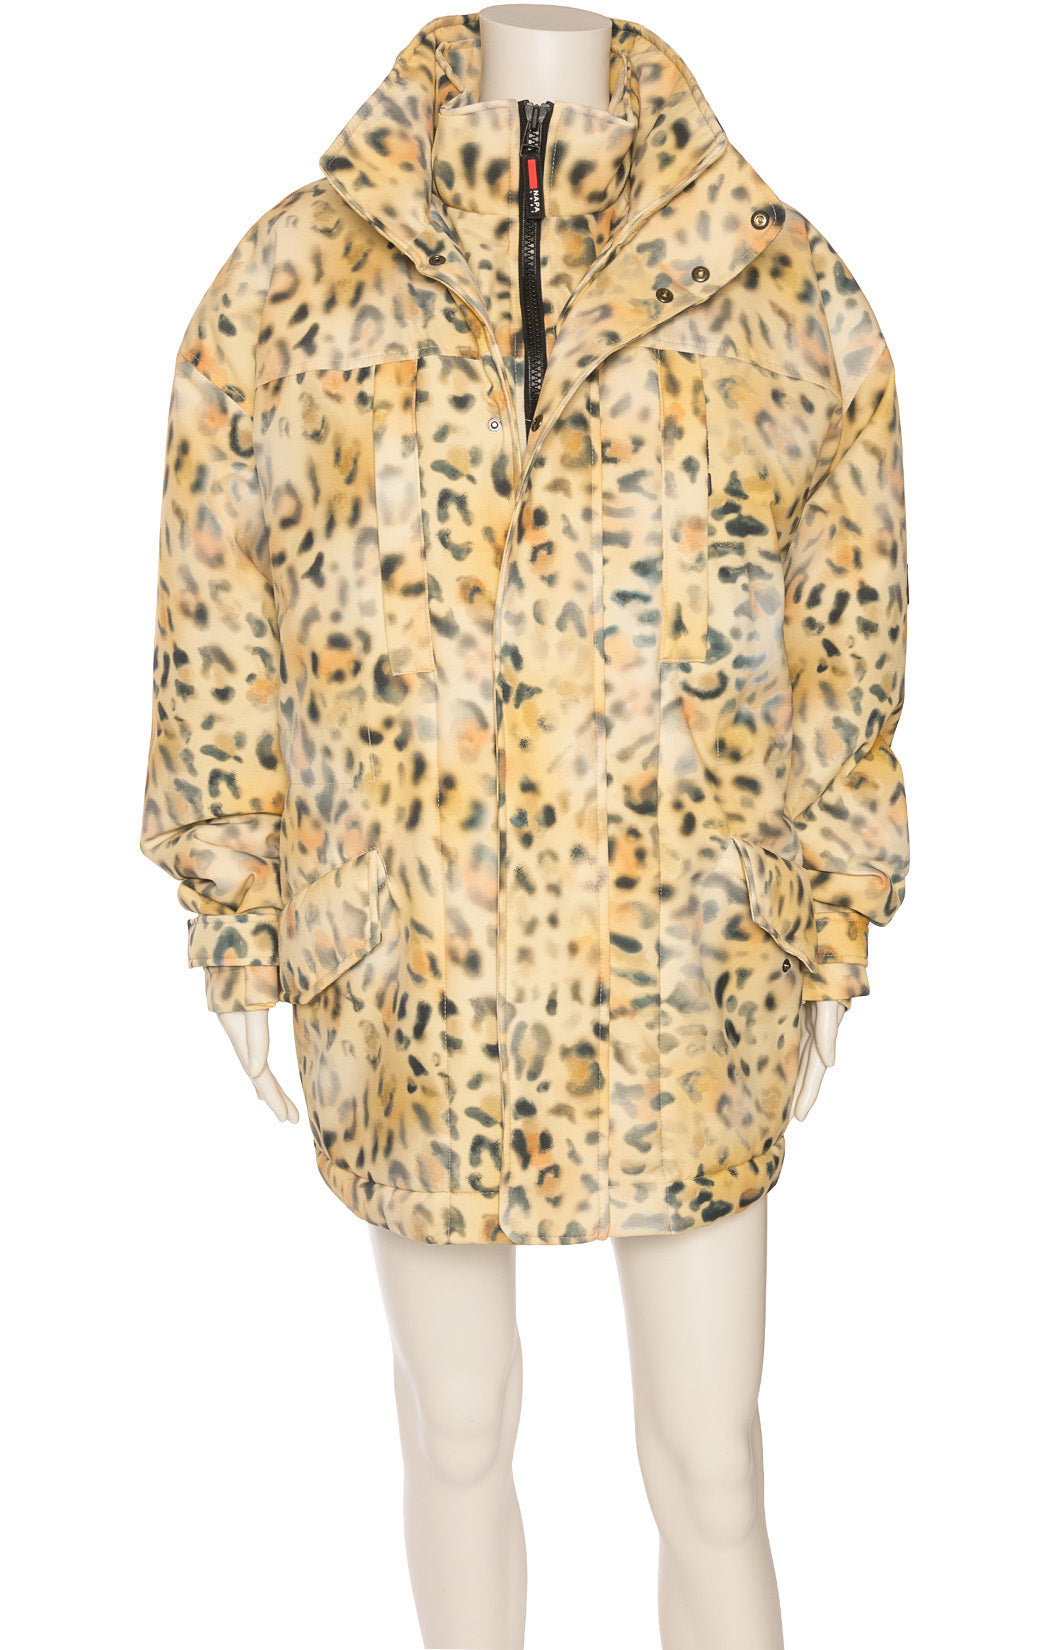 Front view of NAPAPIJRI with tags Puffer jacket/coat Size: Small